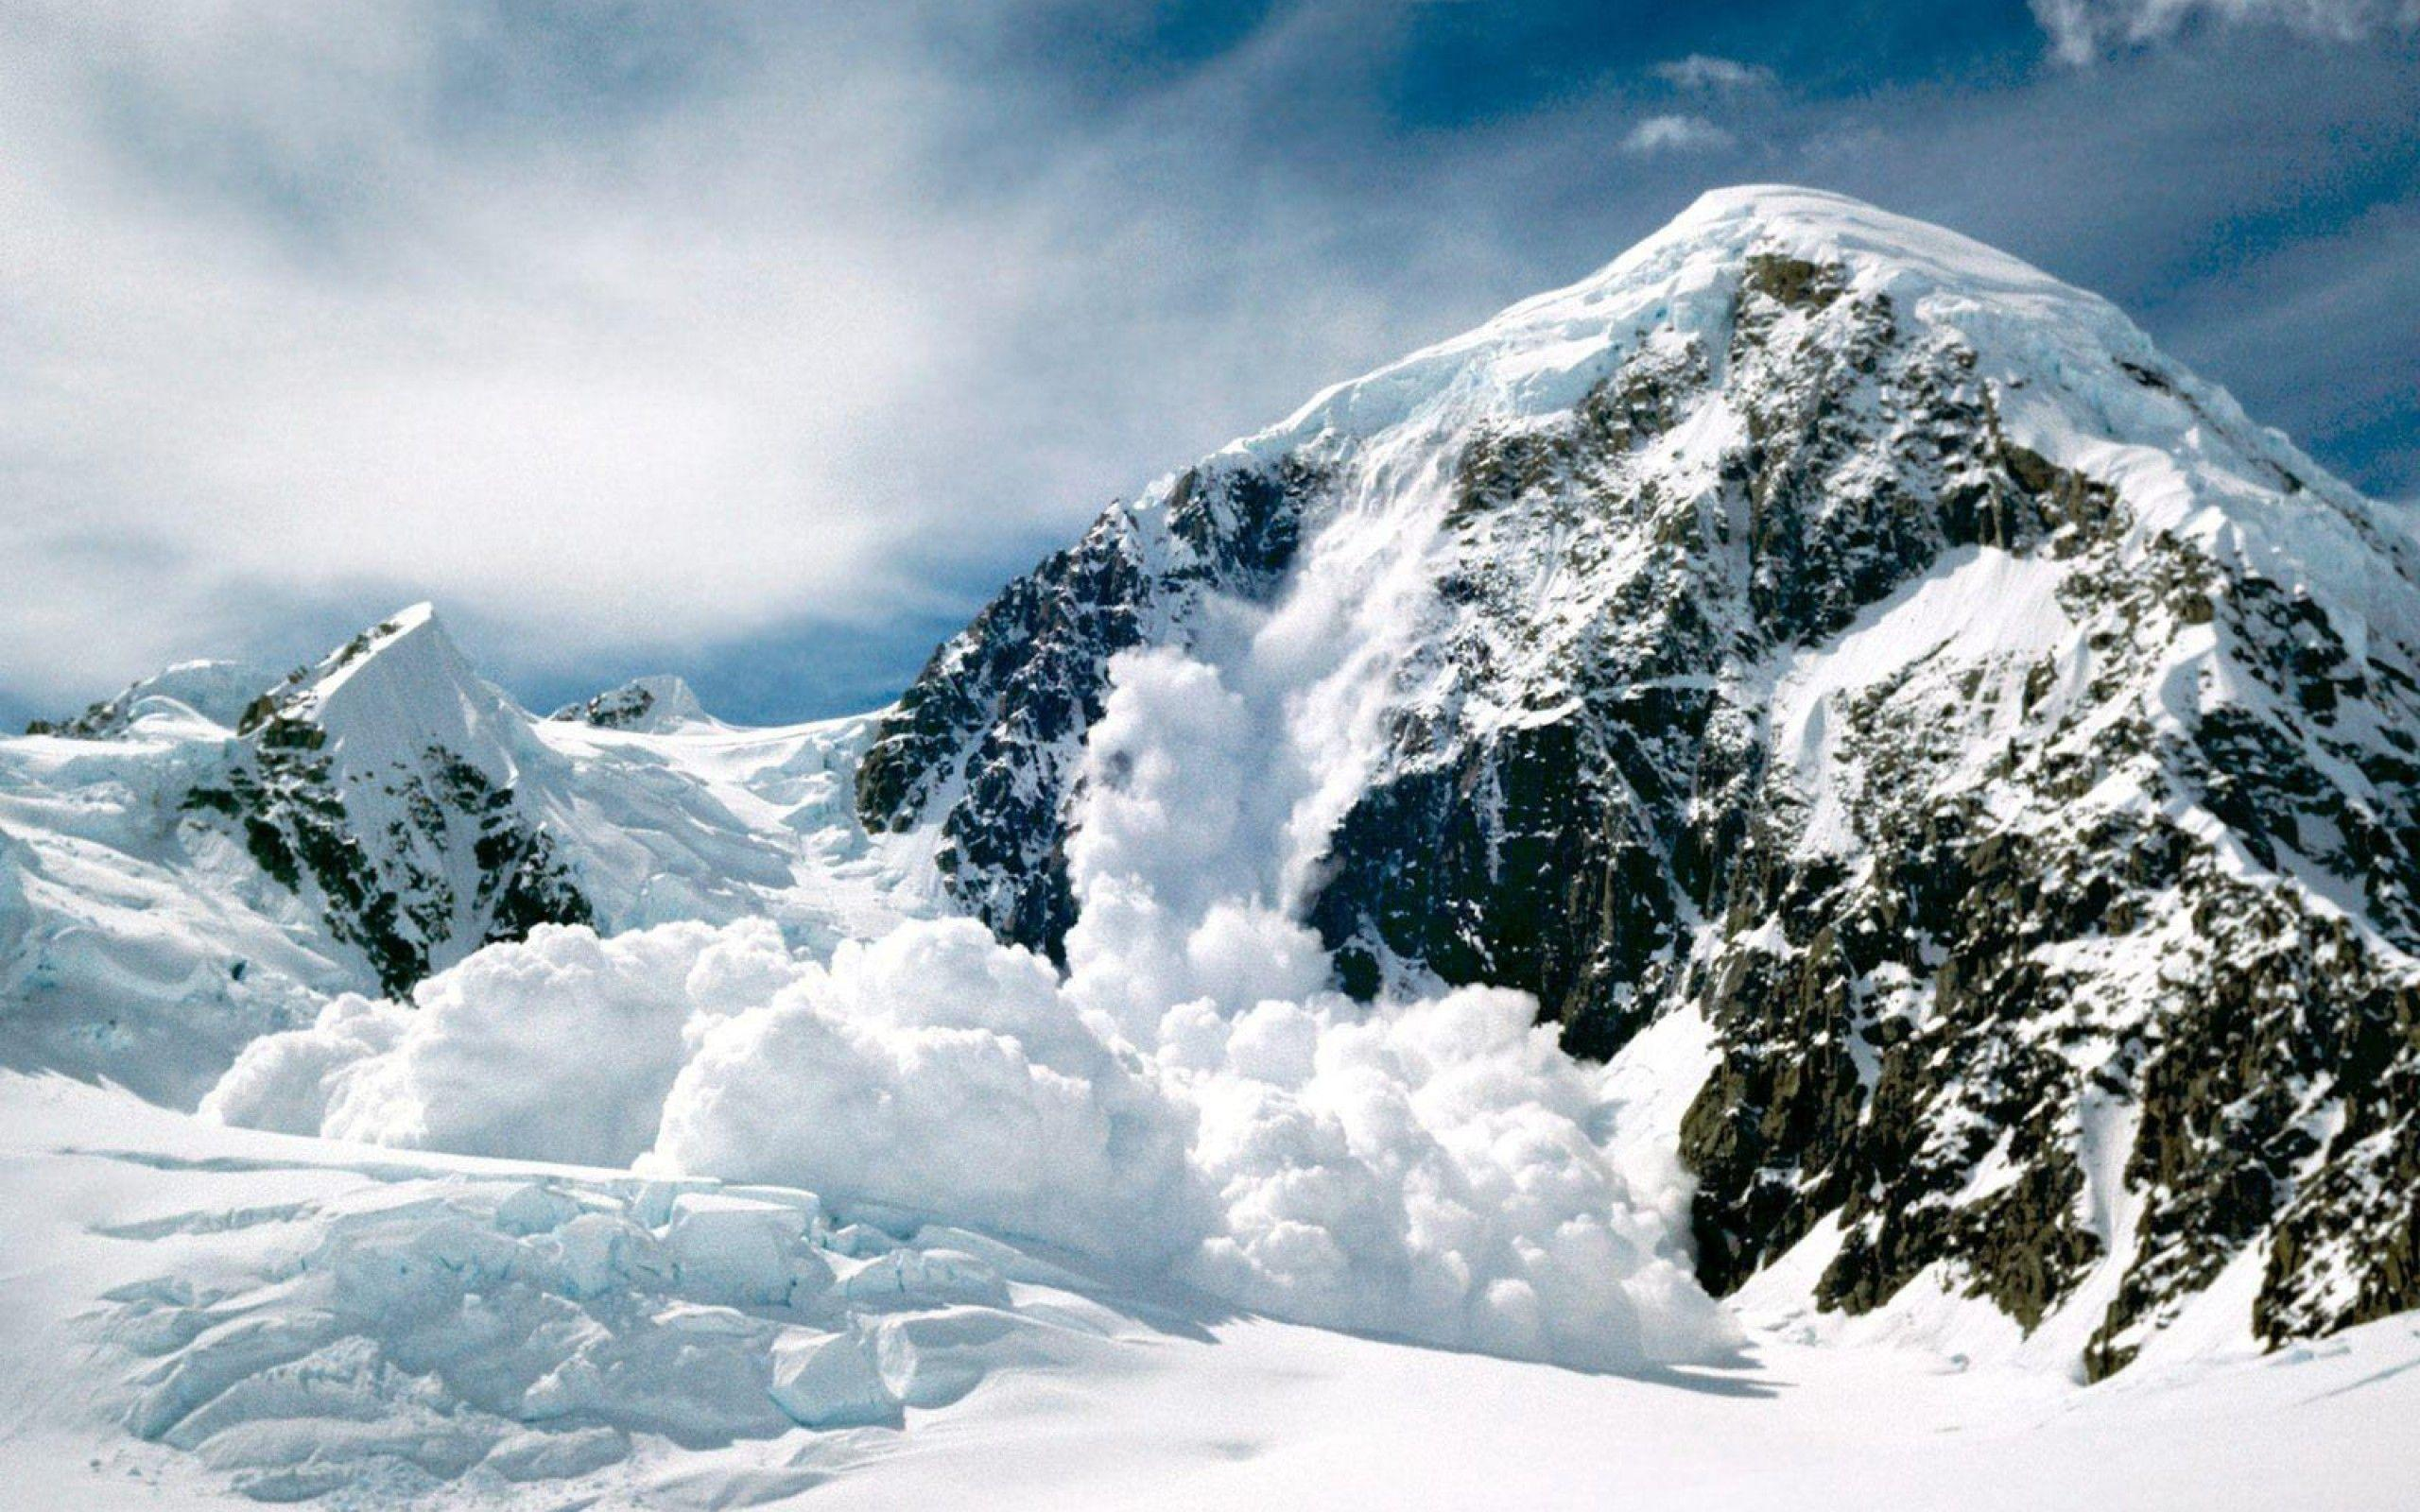 avalanche nature wallpapers - wallpaper cave